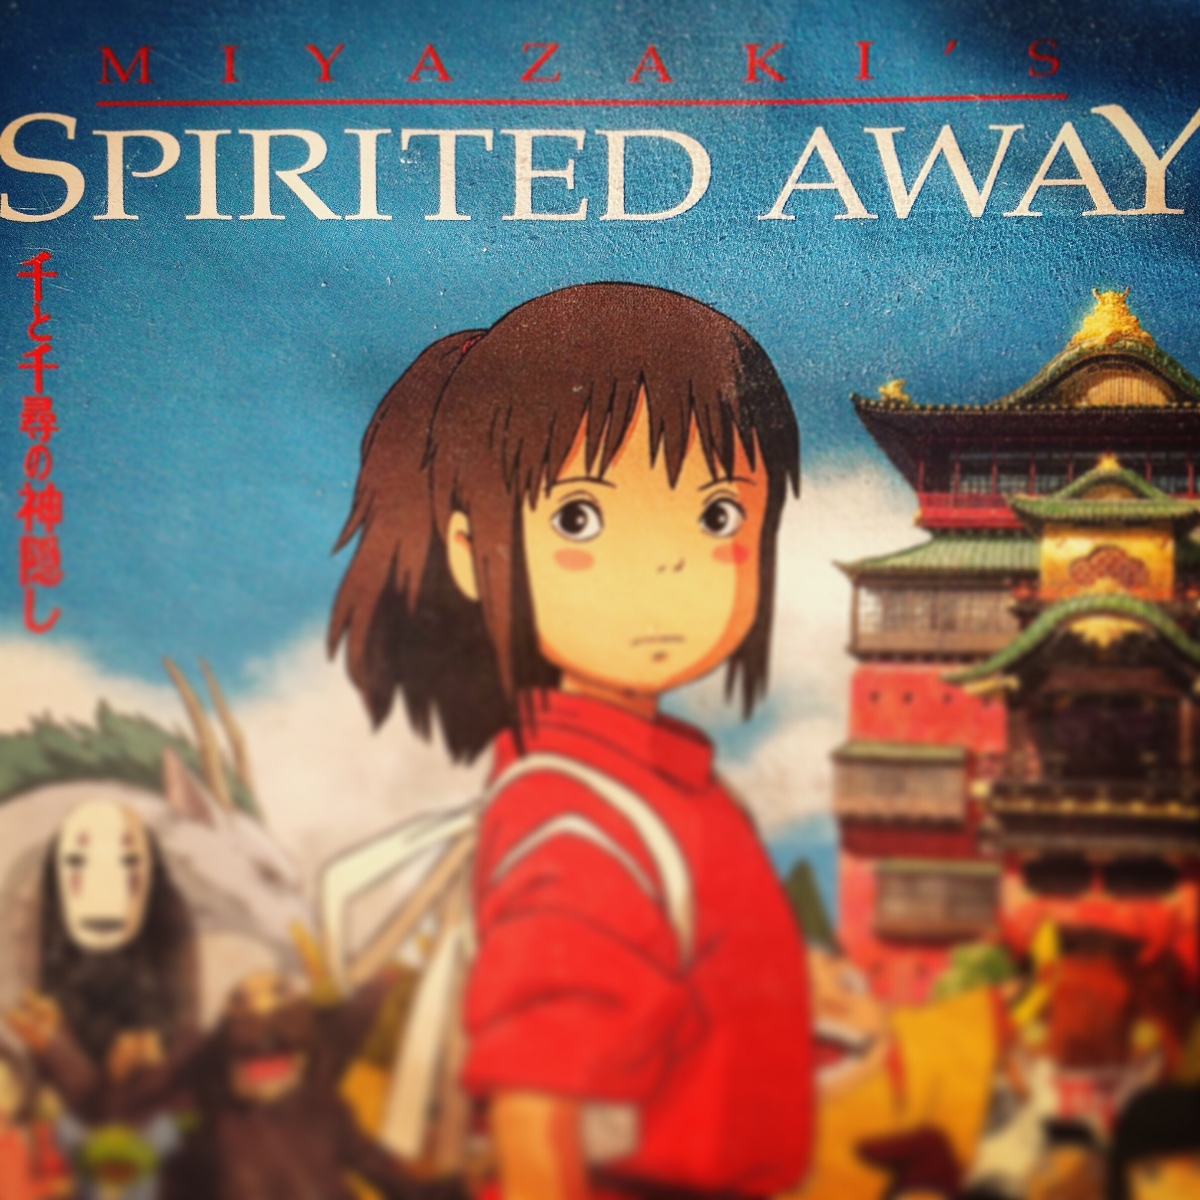 Spirited Away: Studio Ghibli's Oscar Winning Coming of Age Tale